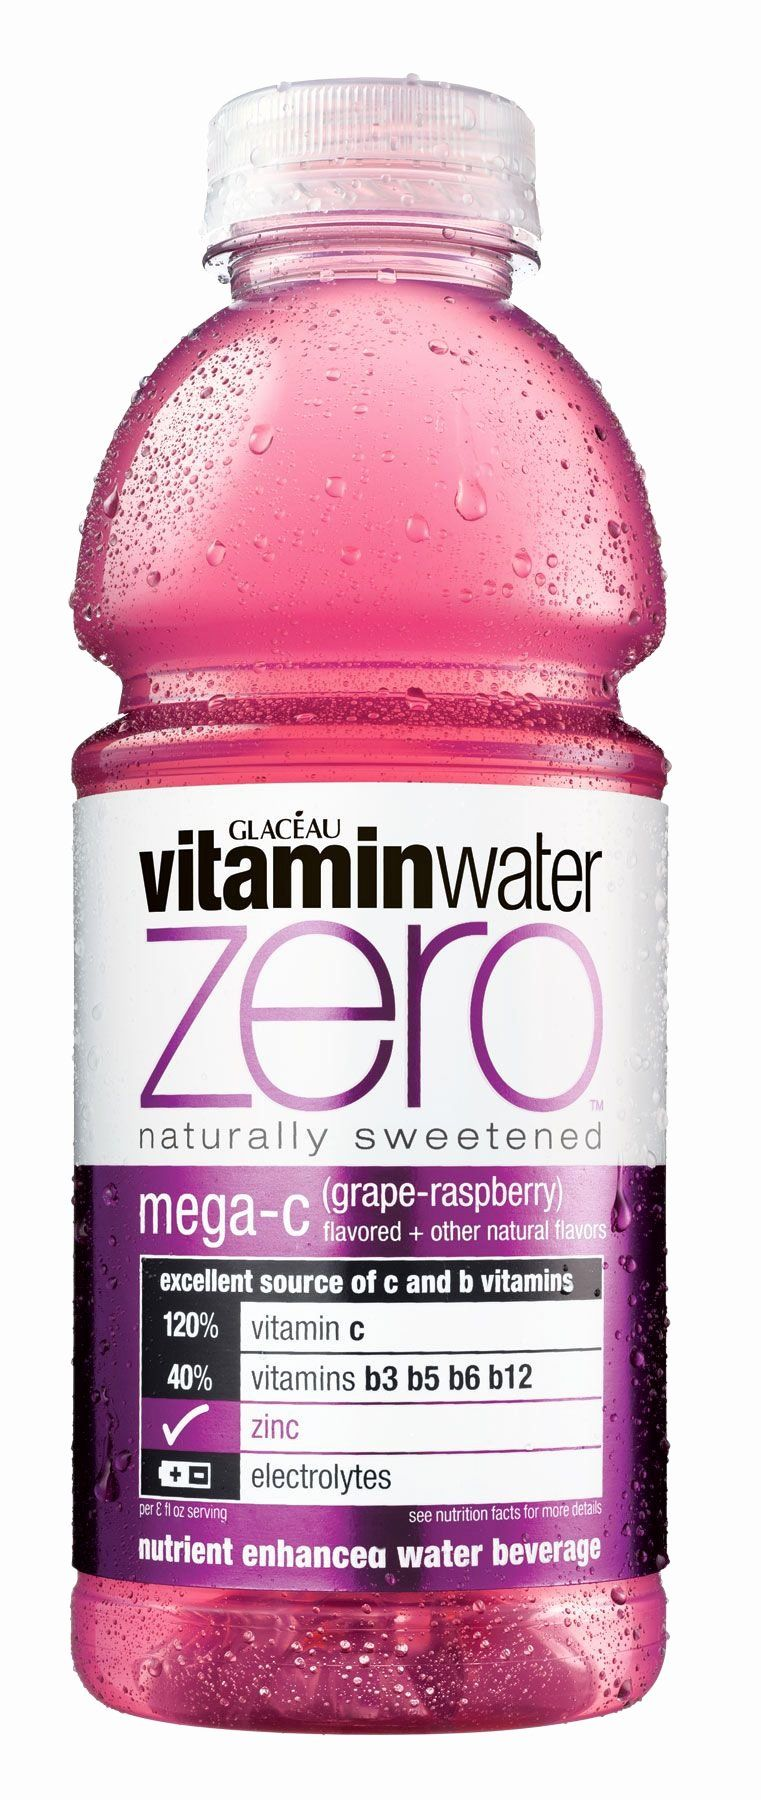 Vitamin Water Label Template Lovely Vitamin Water Zero Use Of Ko Type In Nutrition Facts Panel Back It Up Vitamins Nutrition Facts Label Nutrition Facts